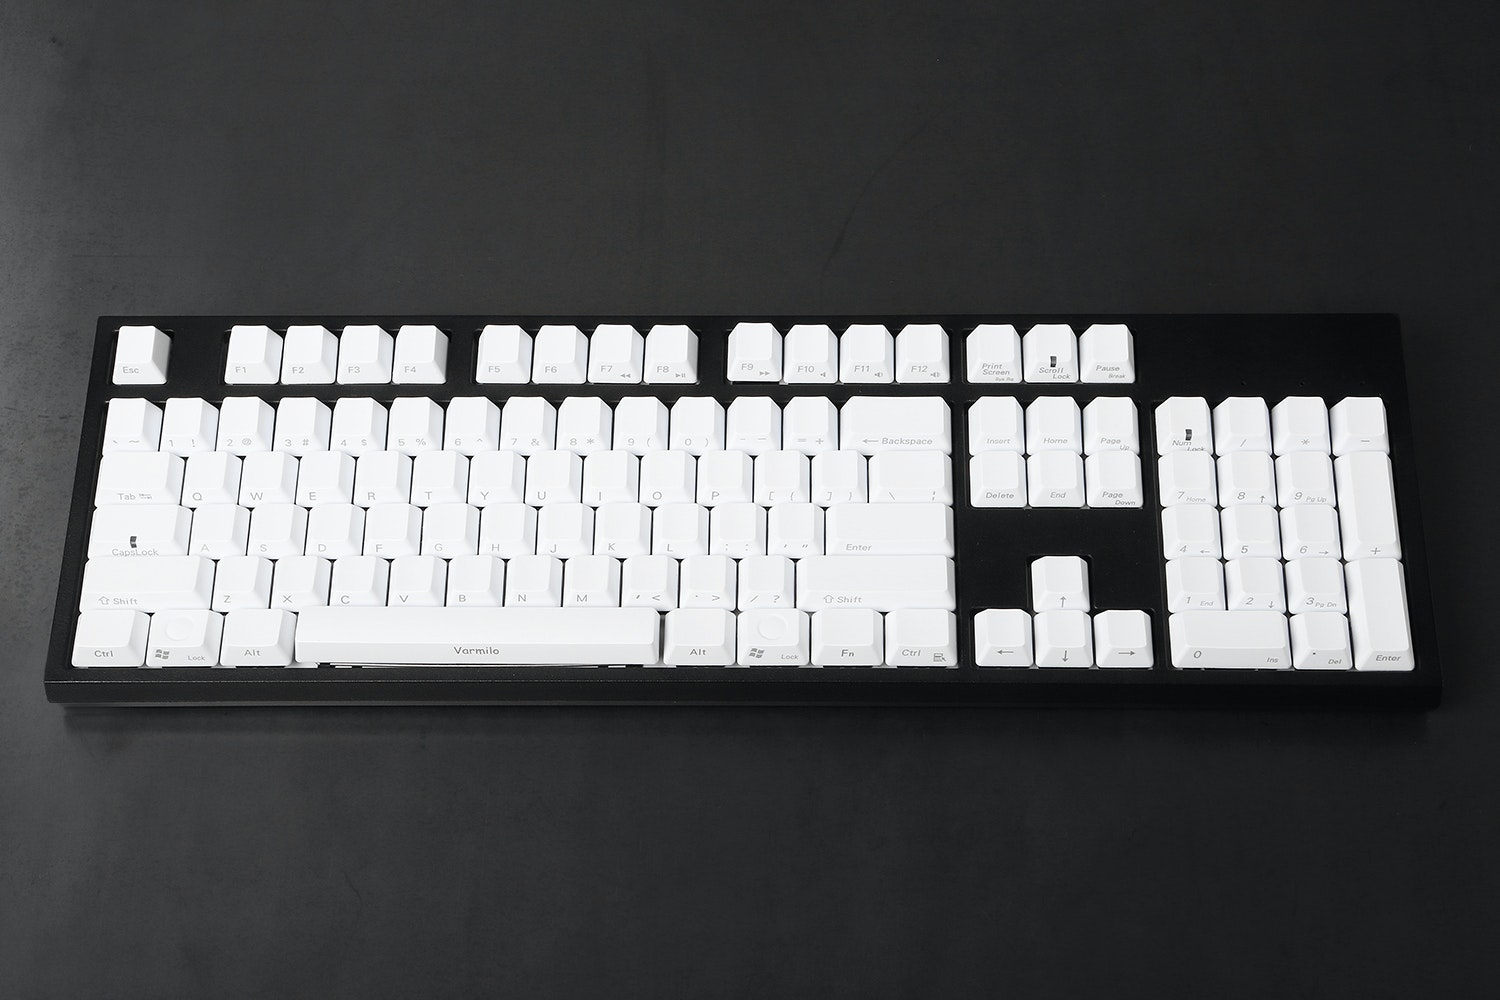 Varmilo Front Printed/Blank Keycaps